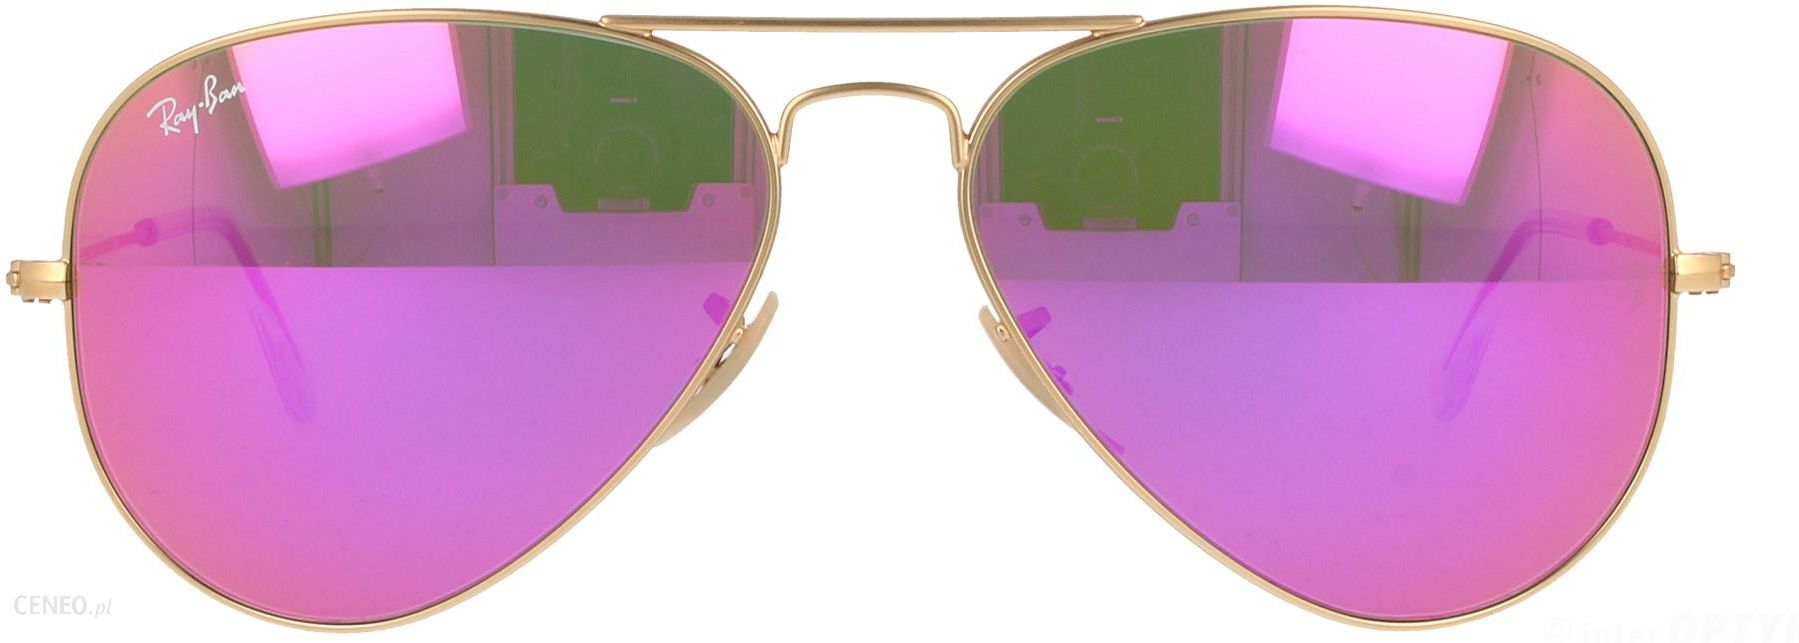 703662d428c34 Ray-Ban AVIATOR LARGE METAL RB3025 112 4T 58 - Ceny i opinie - Ceneo.pl